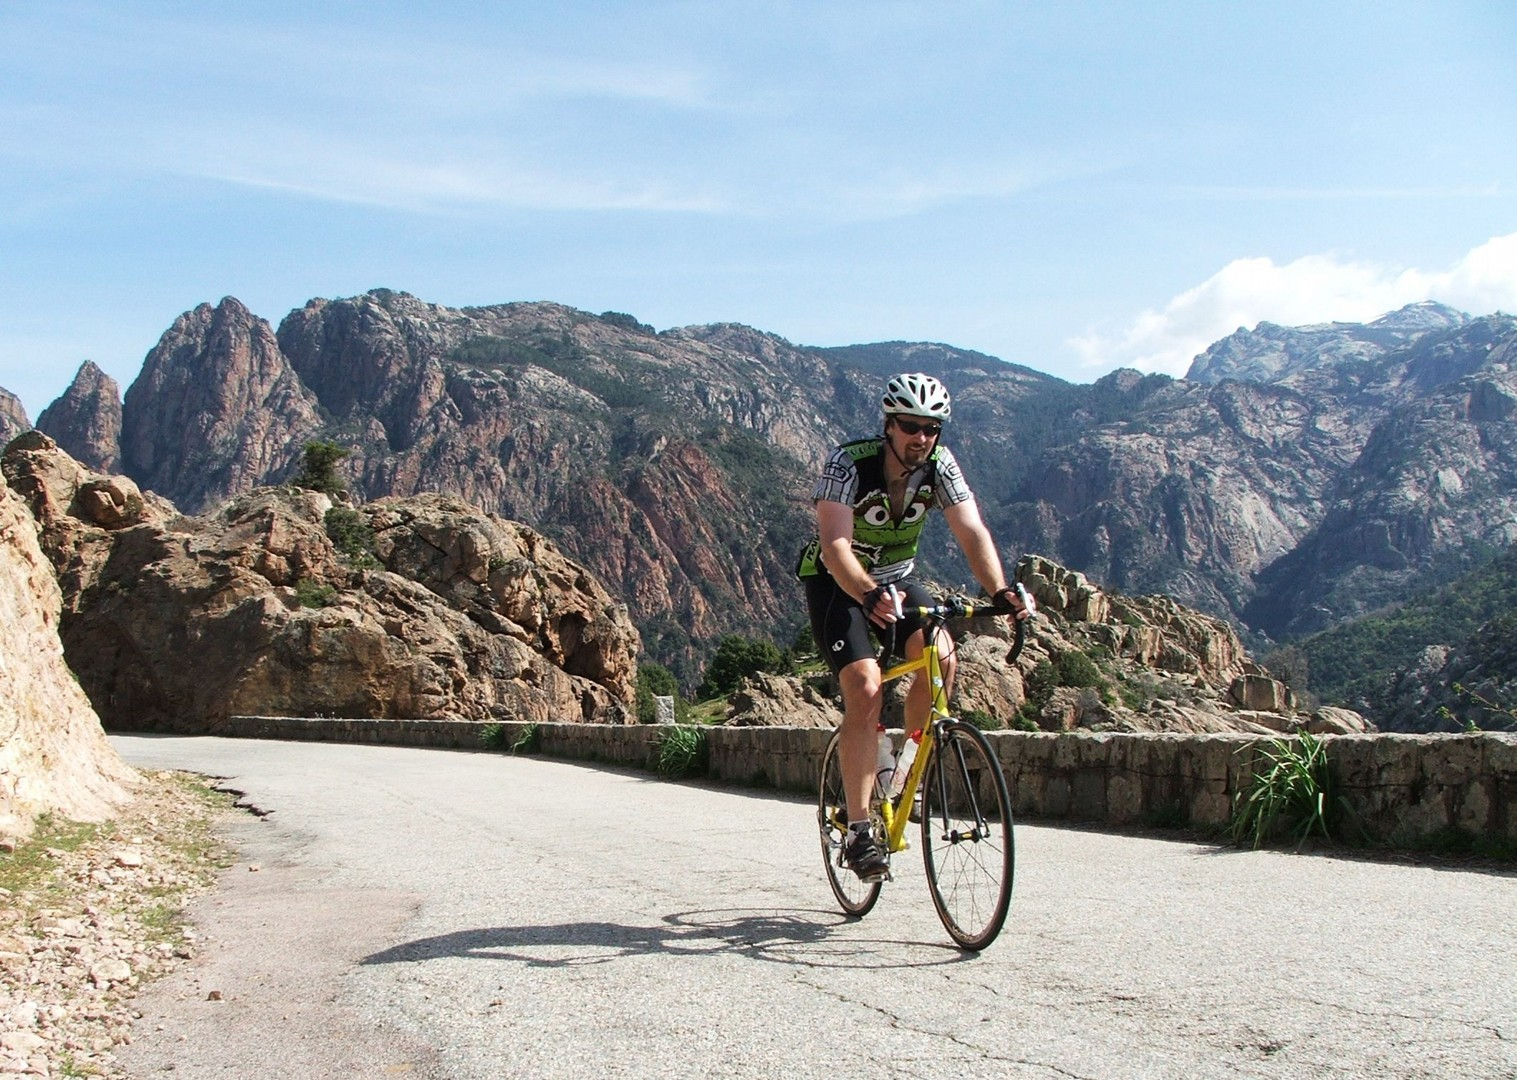 road-cycling-holiday-in-france-corsica.jpg - France - Corsica - The Beautiful Isle - Guided Road Cycling Holiday - Road Cycling